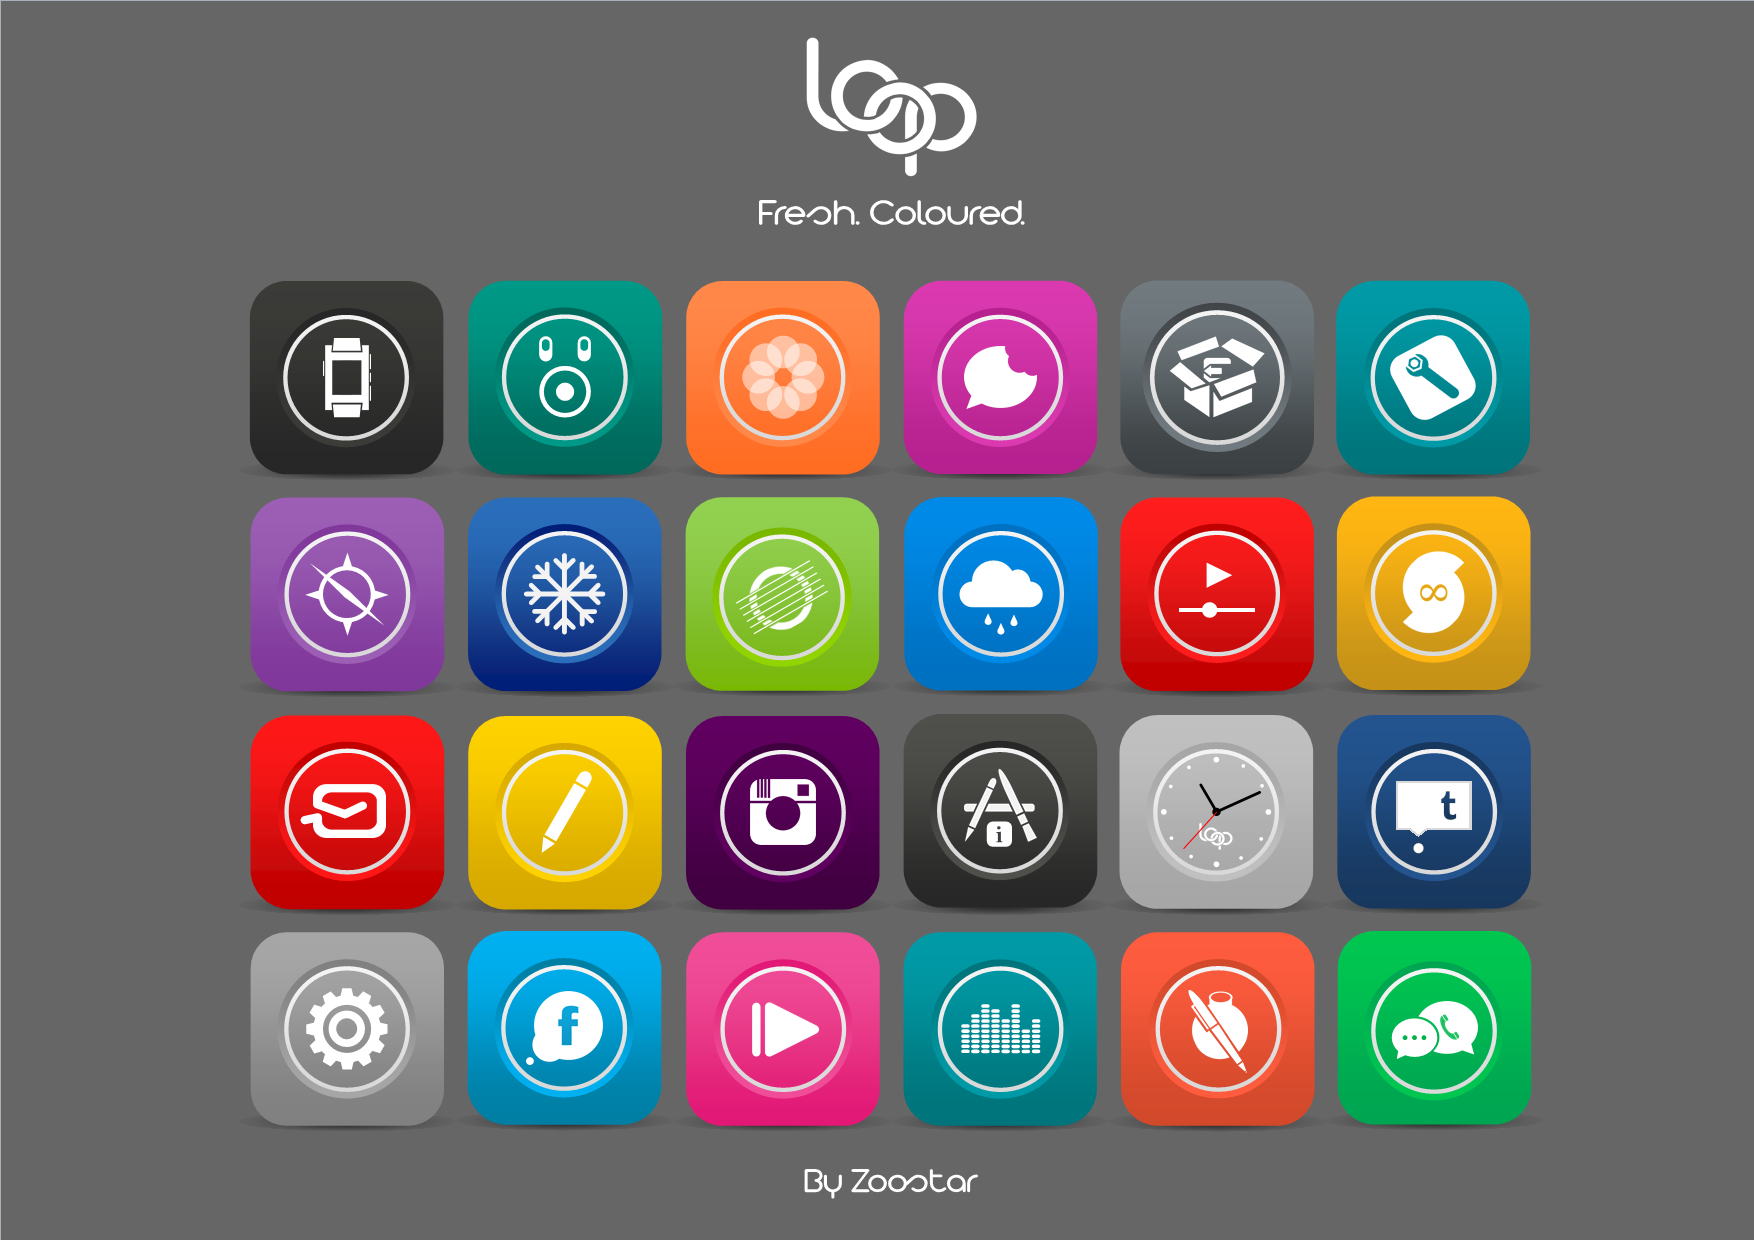 Best Themes Live Wallpapers For Iphone 5s 5c 4s 4 Ios 7: O Noua Tema Pentru IOS 7 Care Schimba Complet